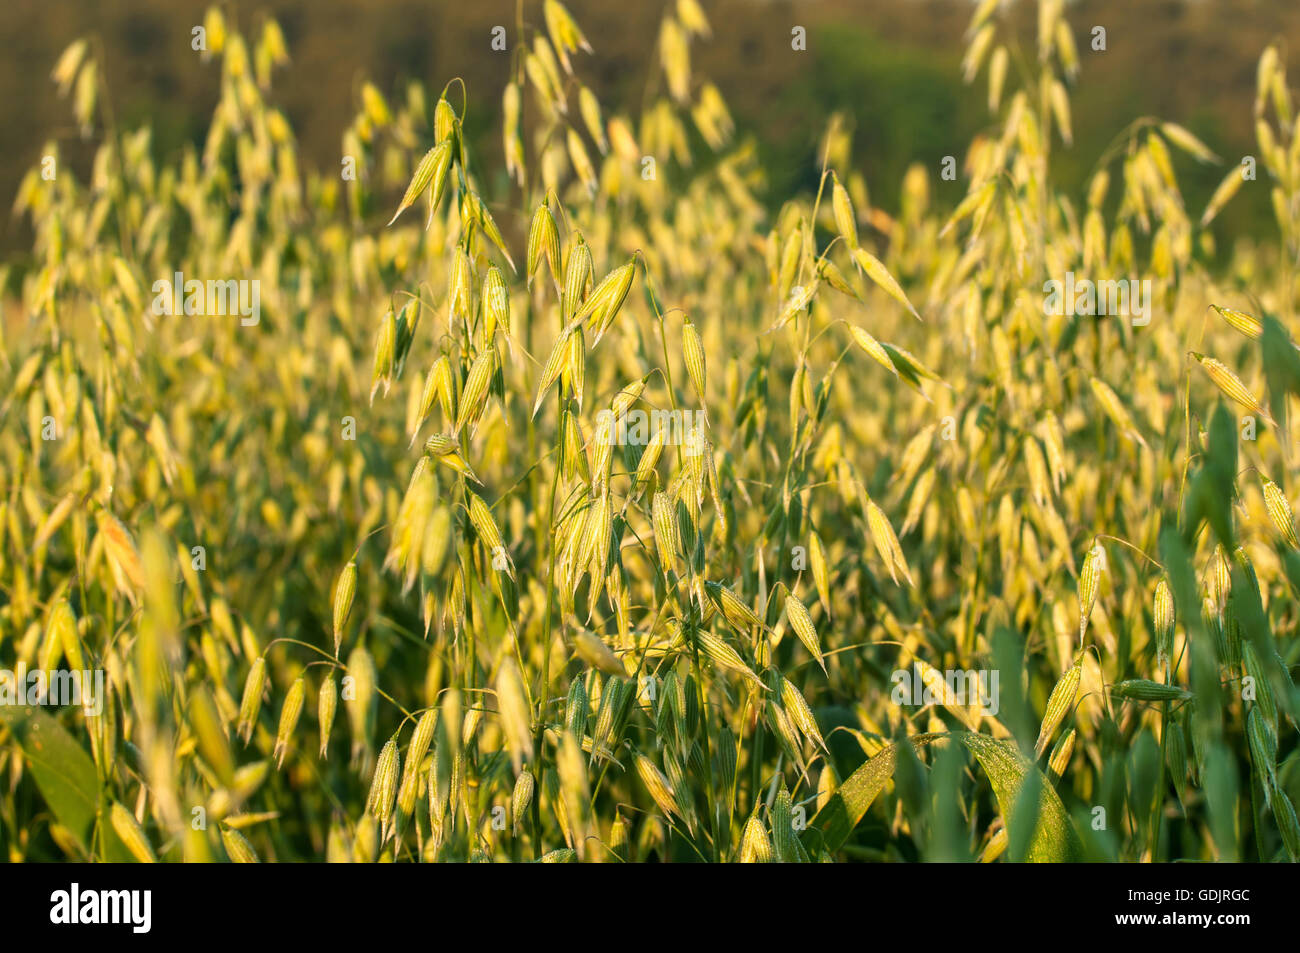 Close up photo of a oat field - Stock Image